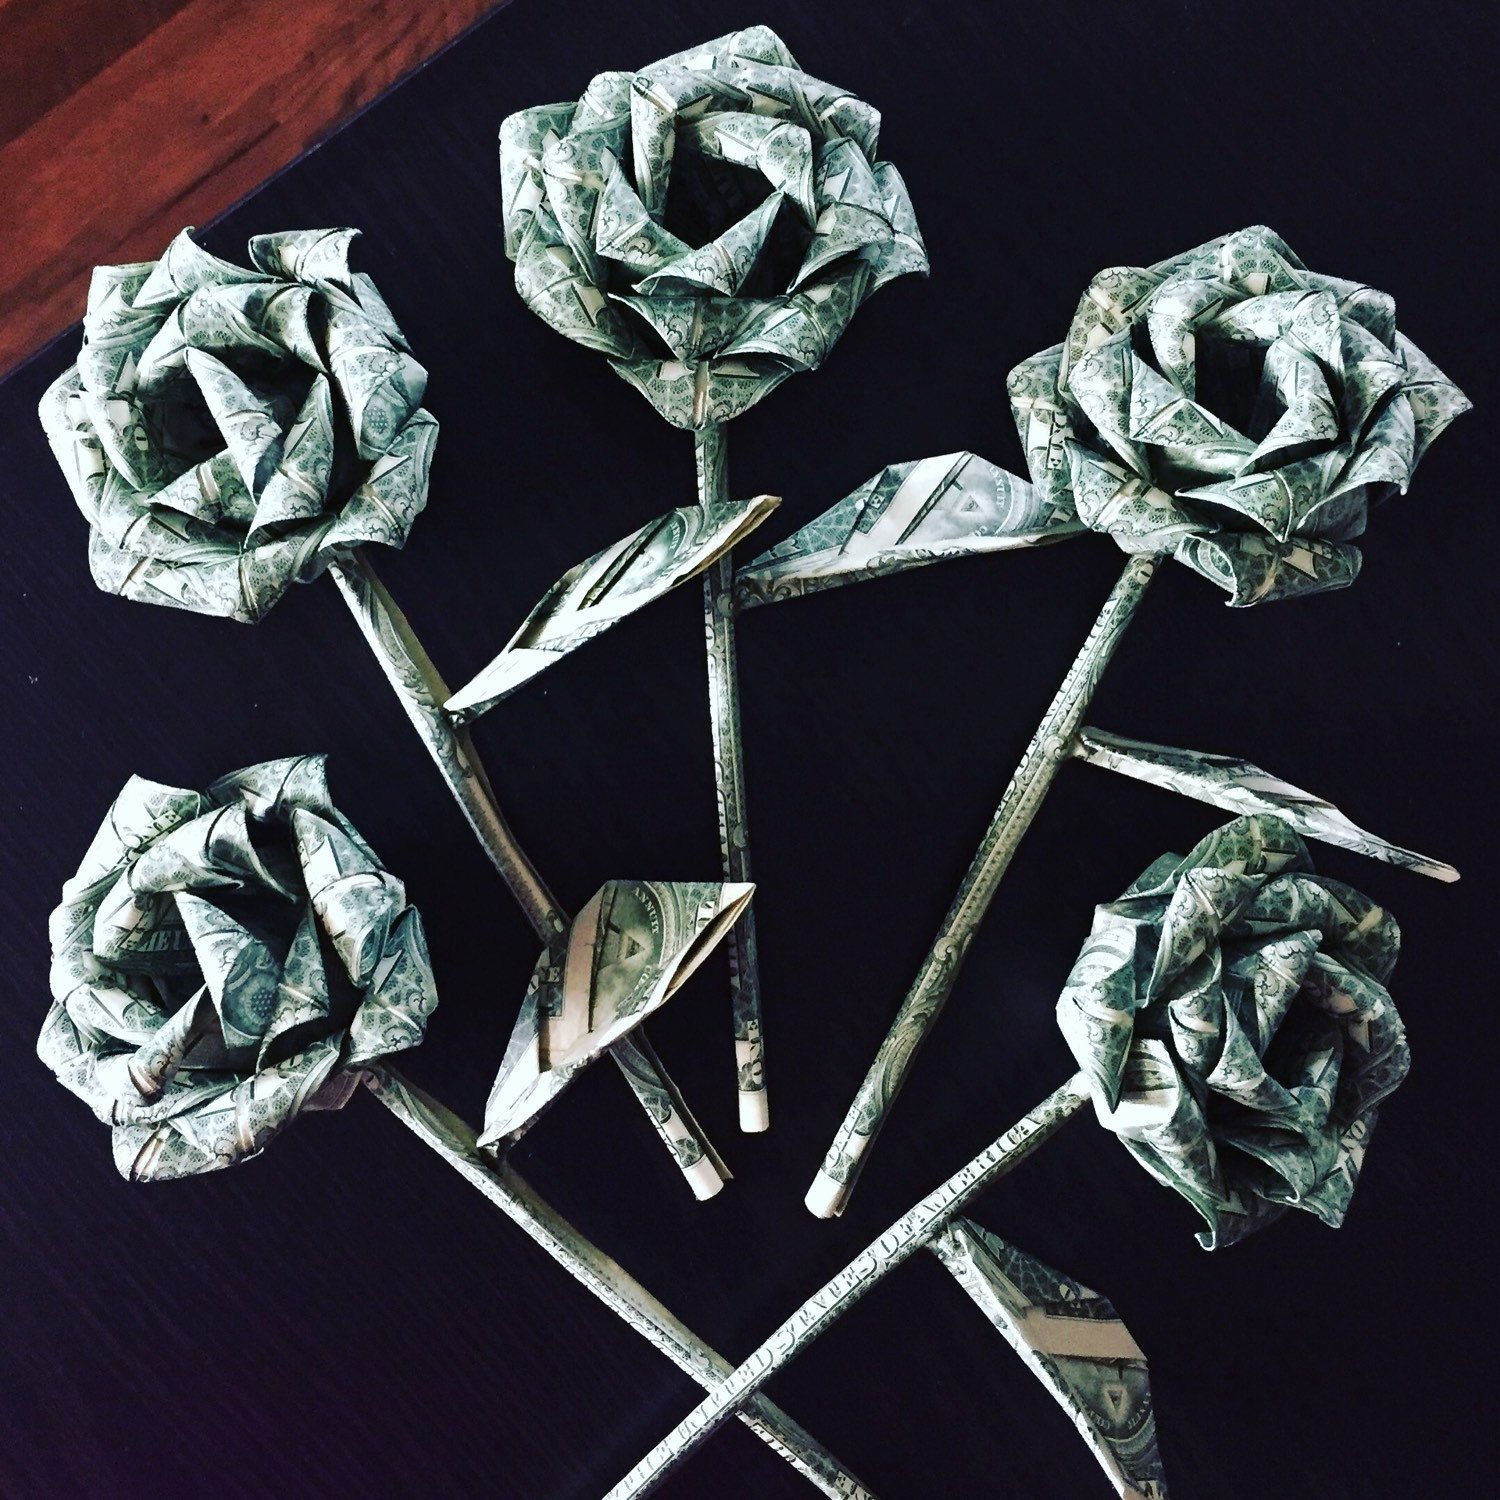 Money roses - money flower - origami money rose - dollar ... - photo#8